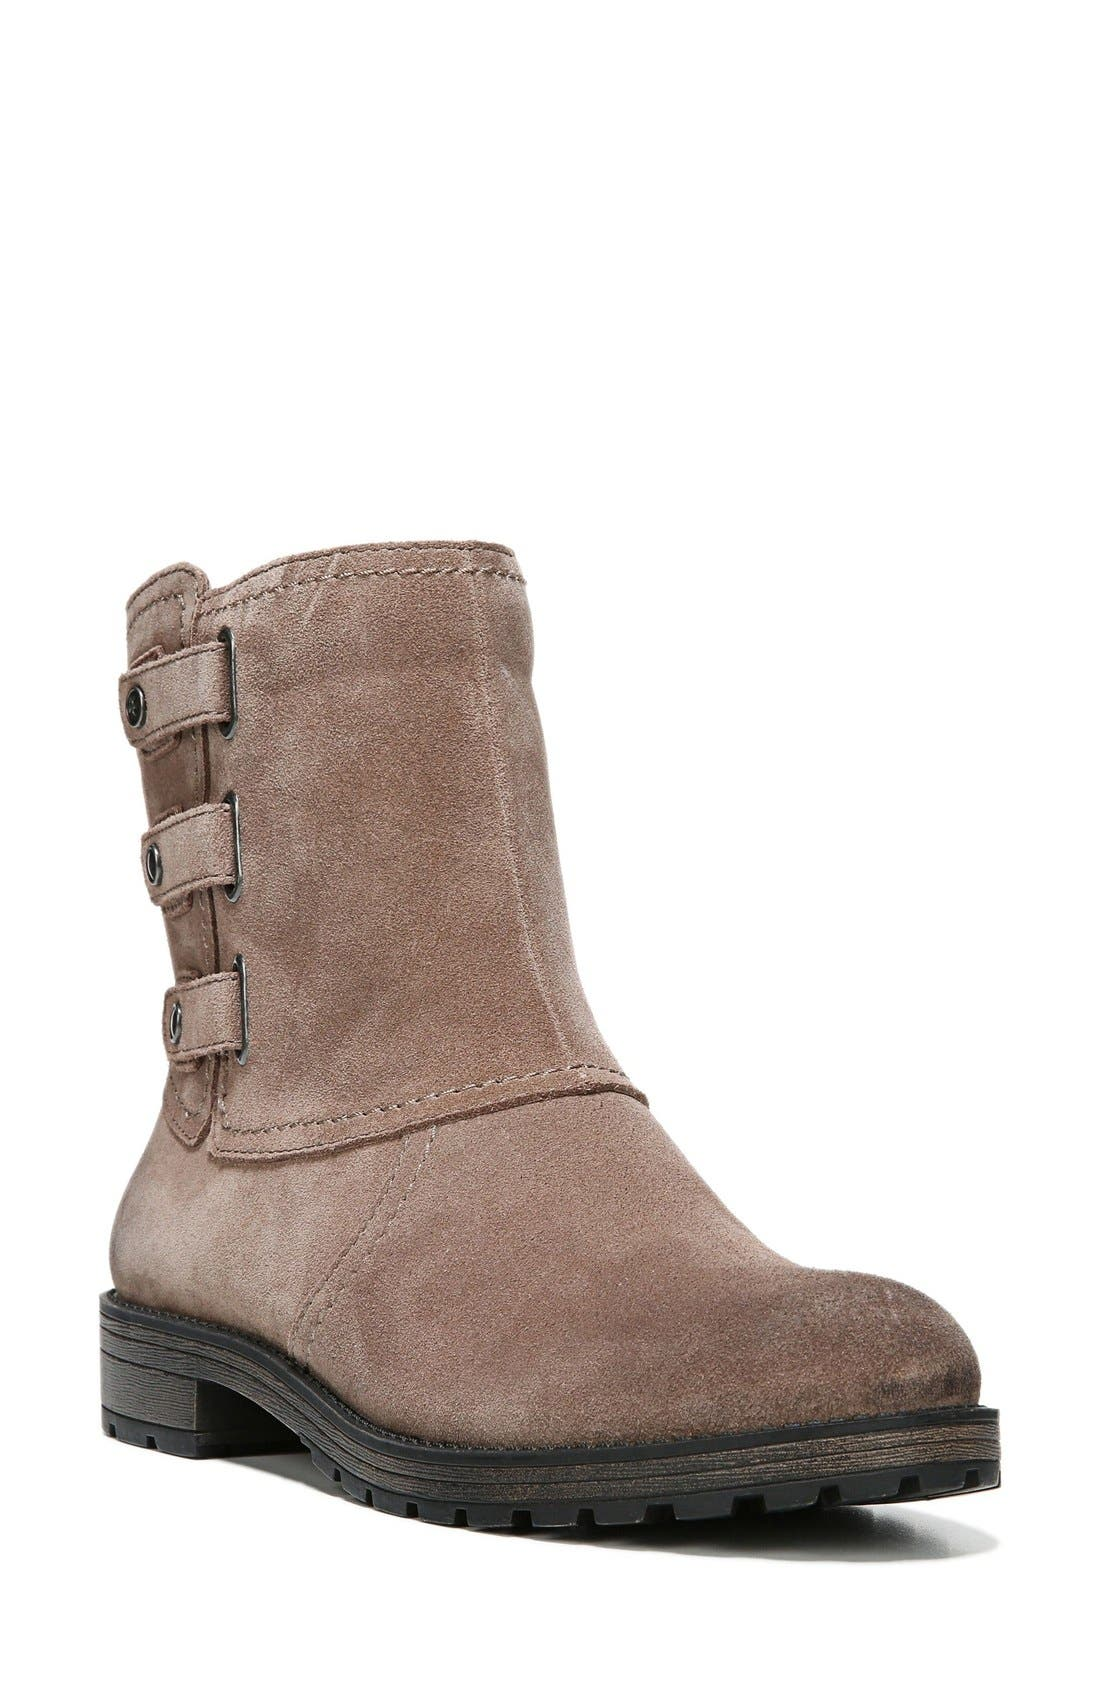 'Tynner' Boot,                         Main,                         color, Taupe Leather